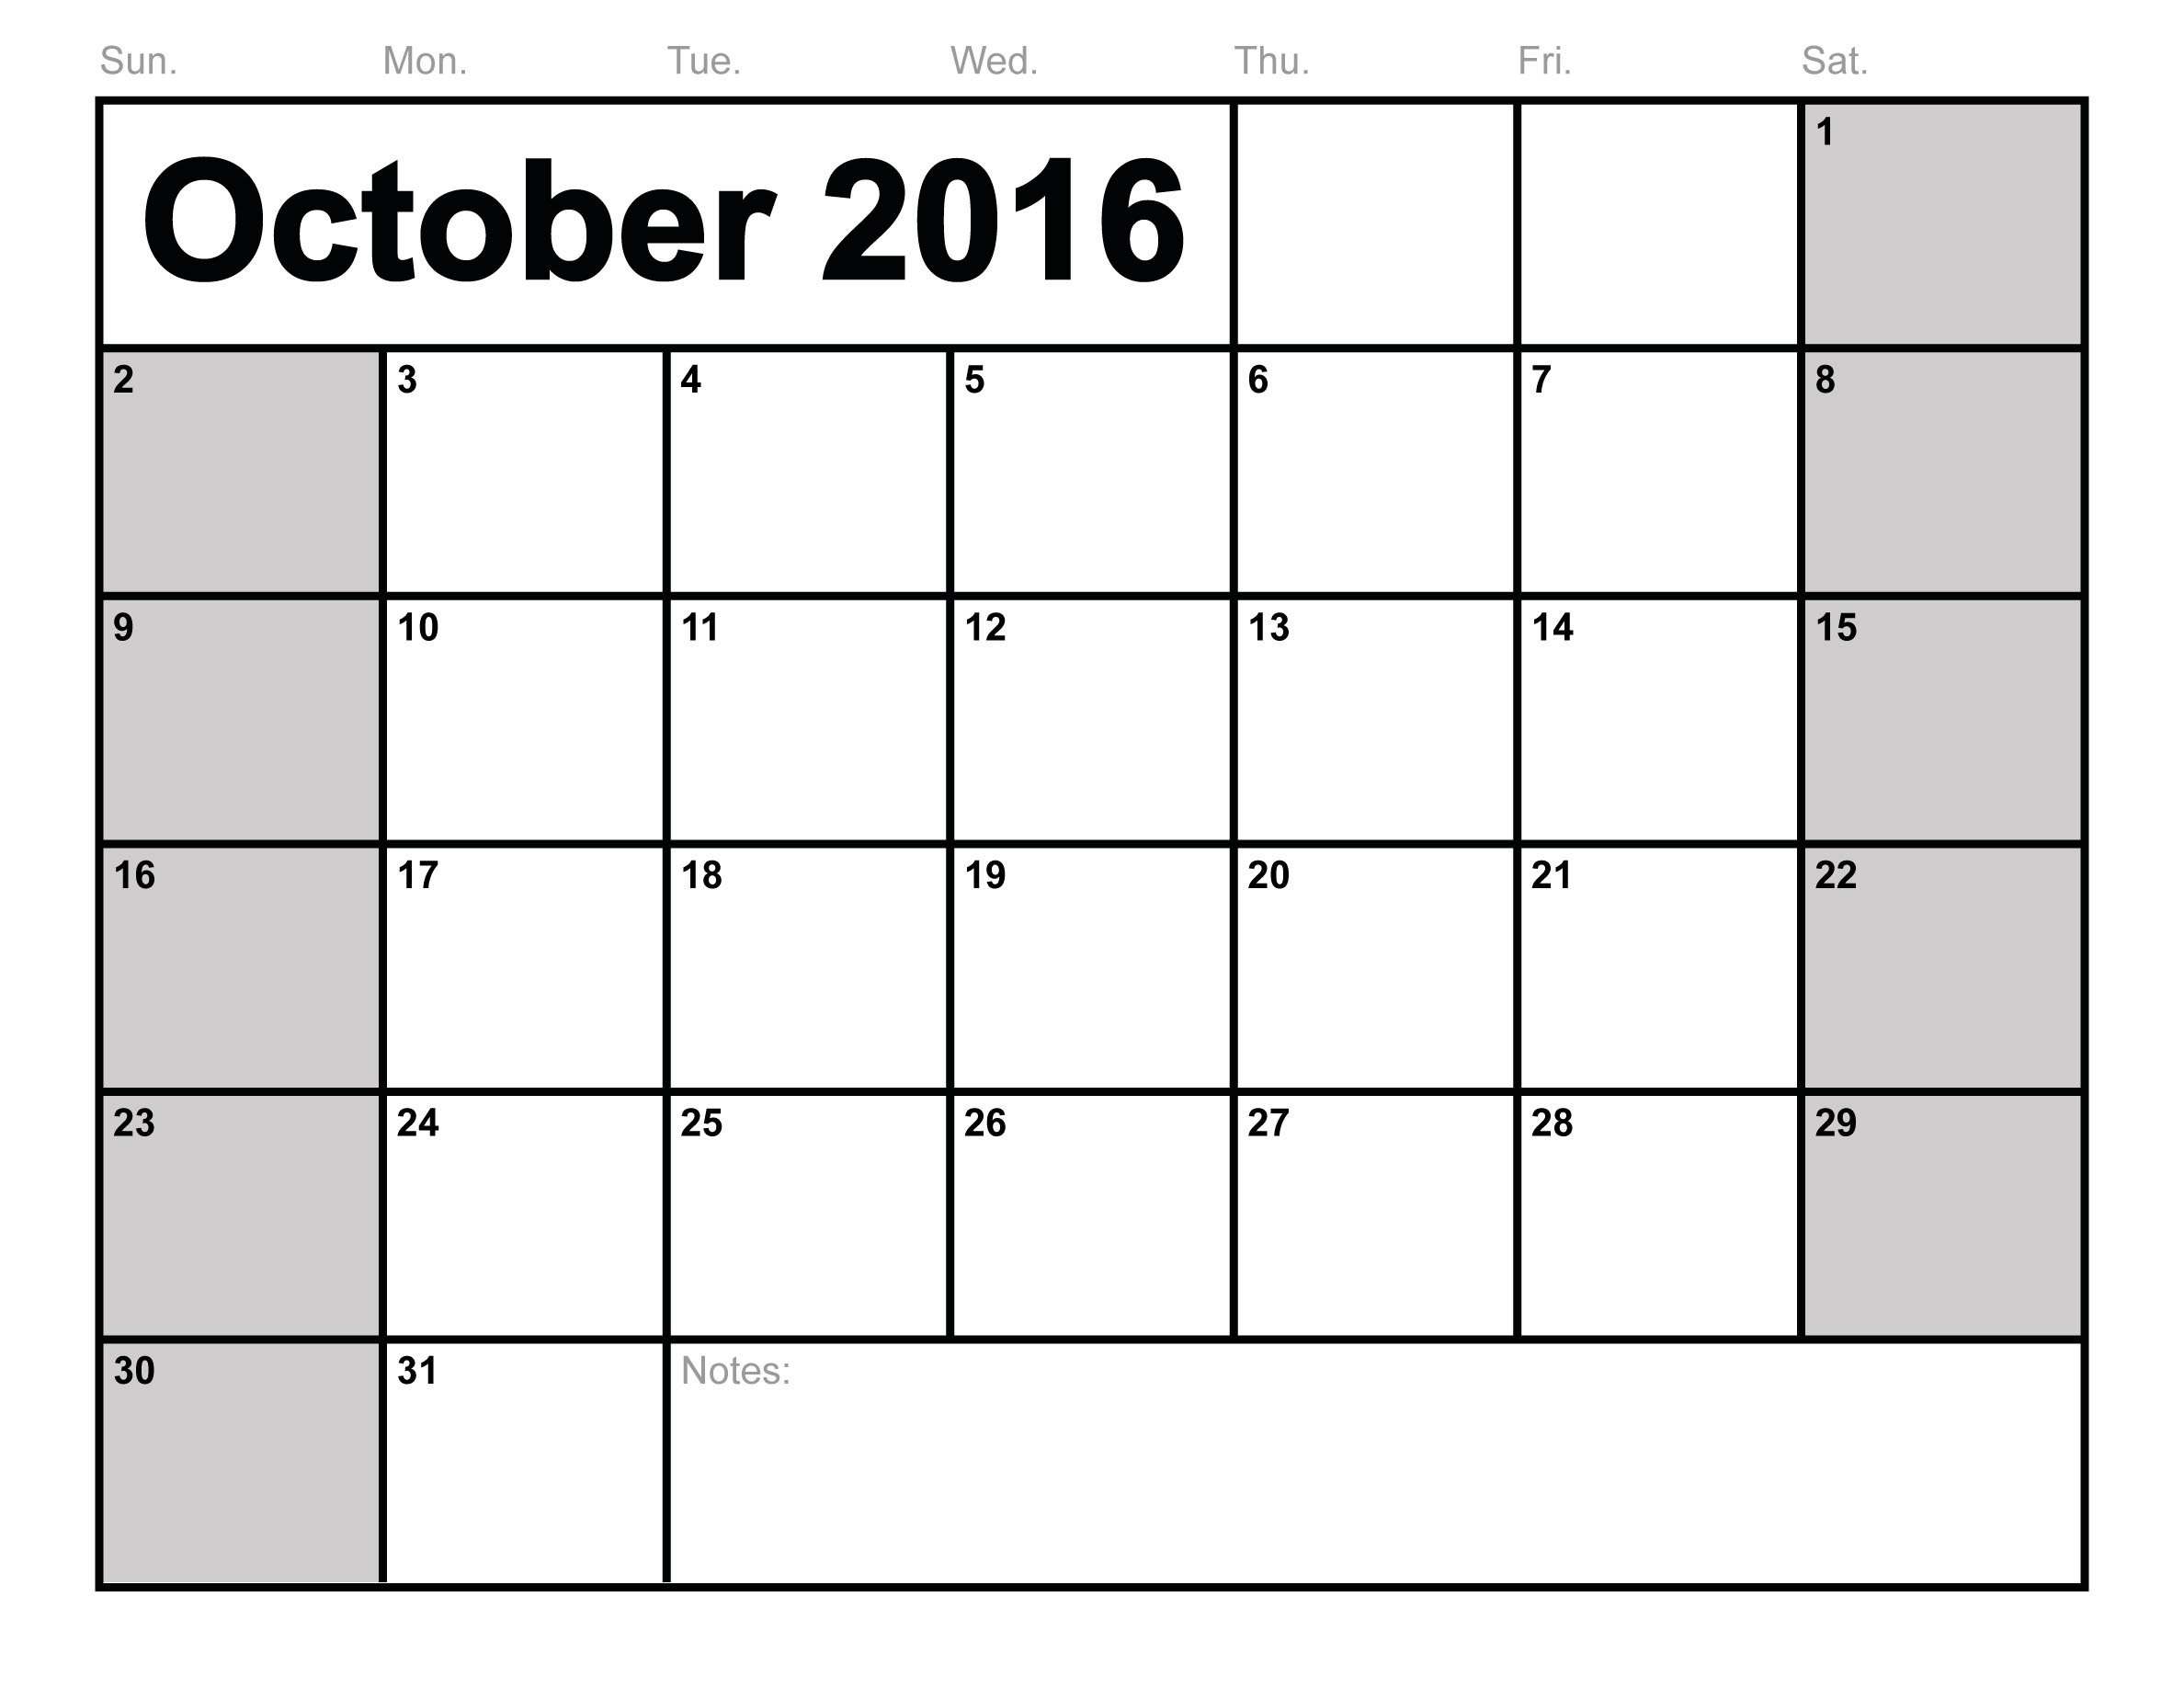 October 2016 Calendar Printable With Holidays | monthly calendar